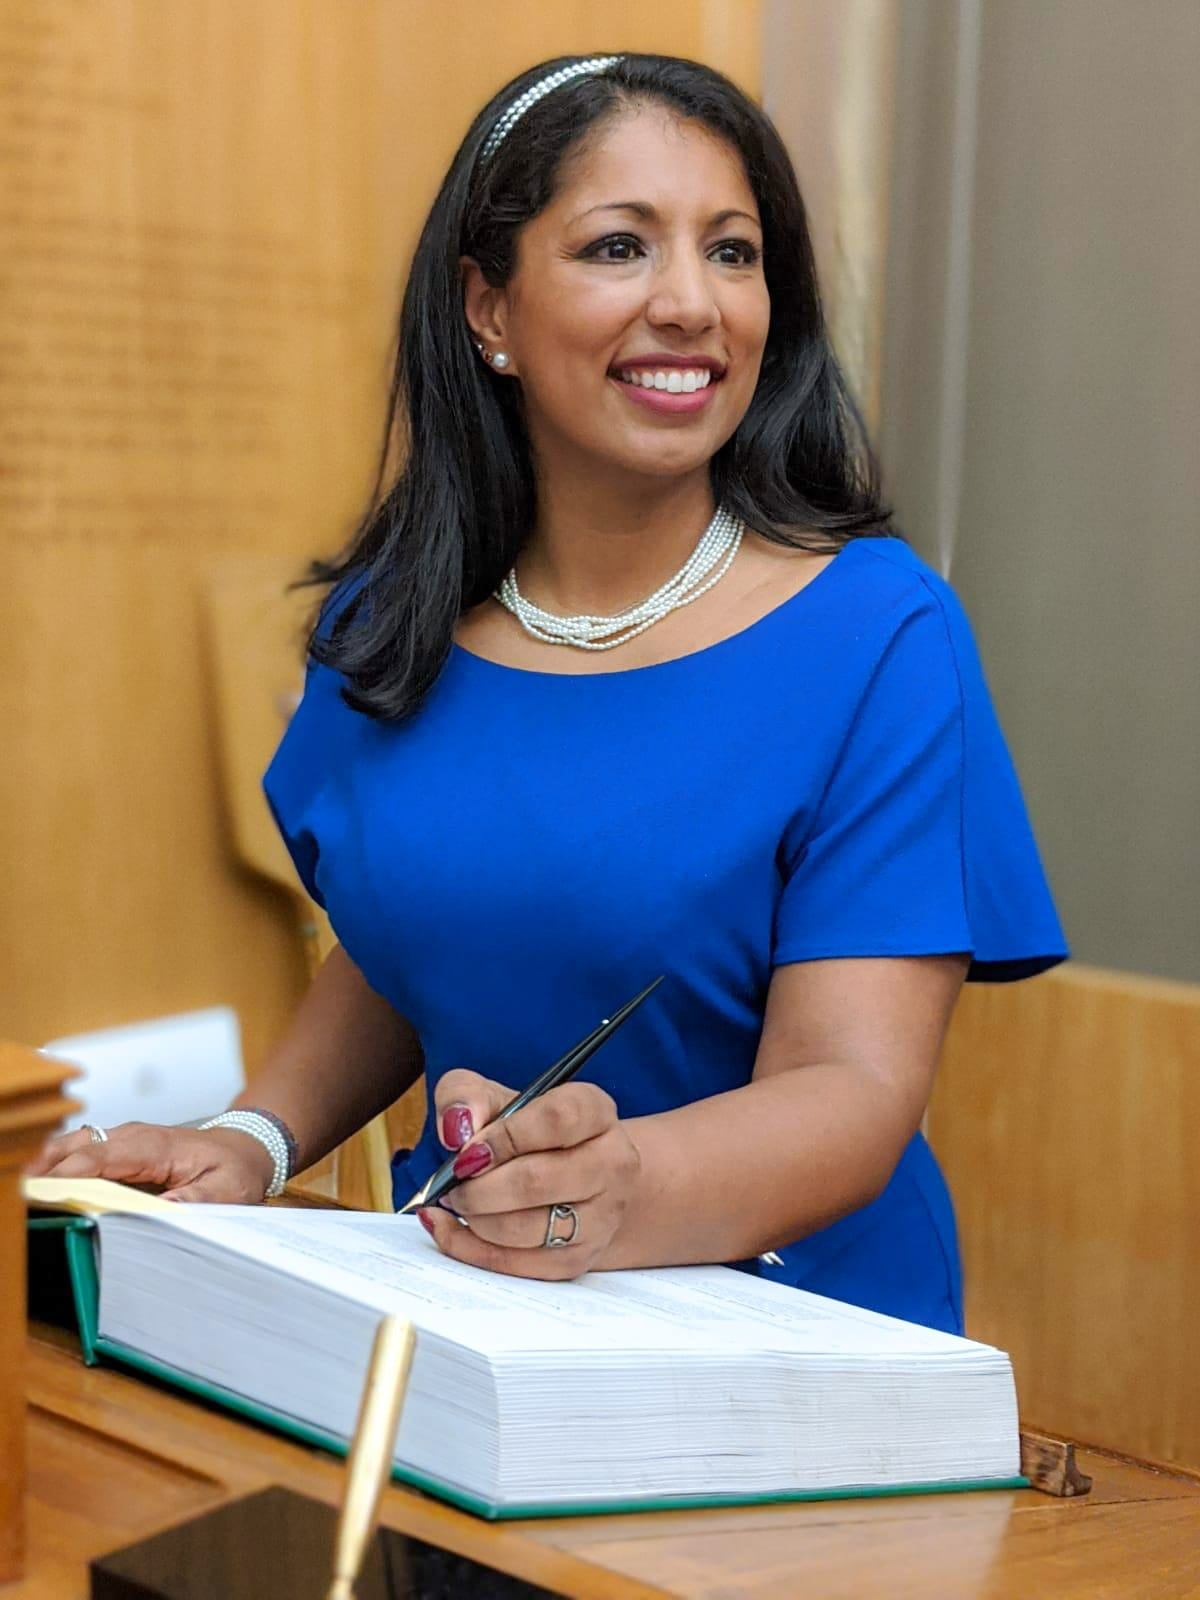 Naureen Shariff signs the Freeman's Declaration Book shortly after being awarded the Freedom of the City of London.